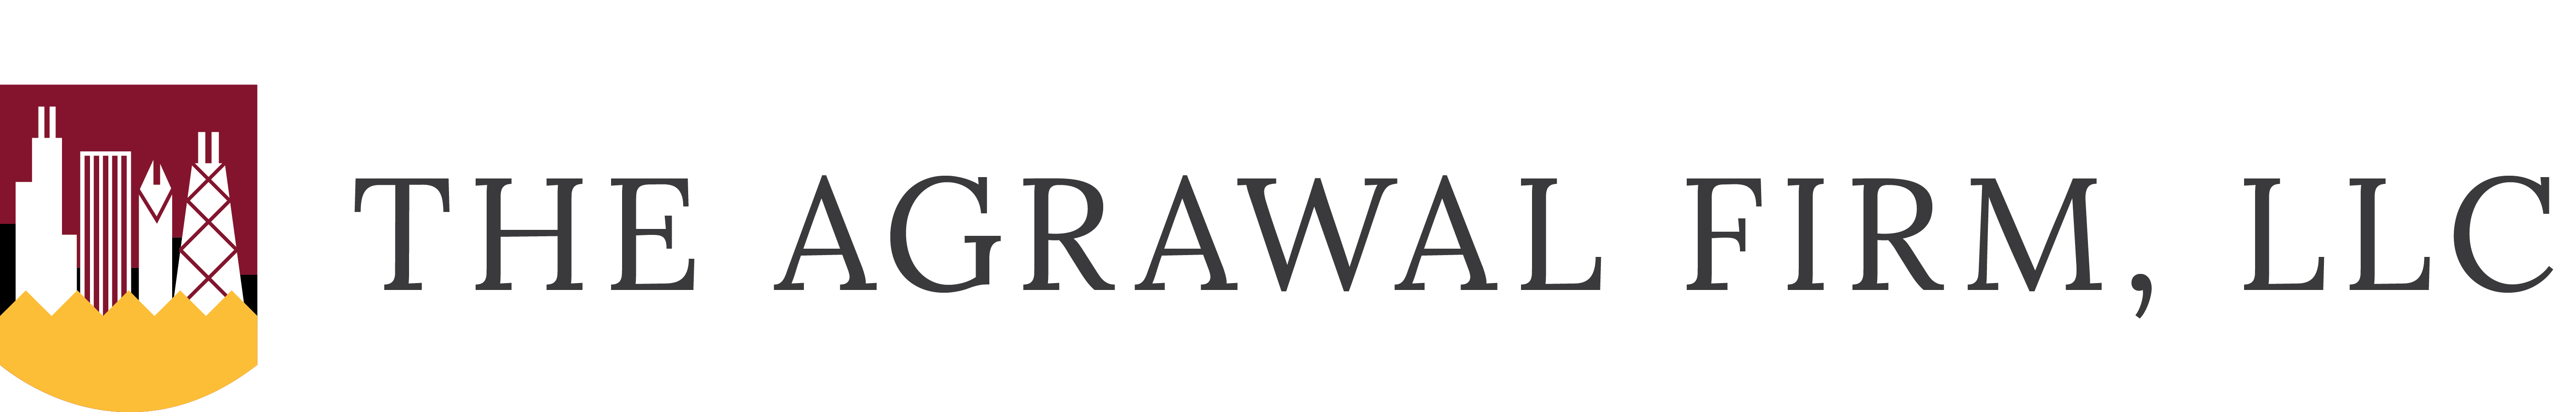 The Agrawal Firm, LLC